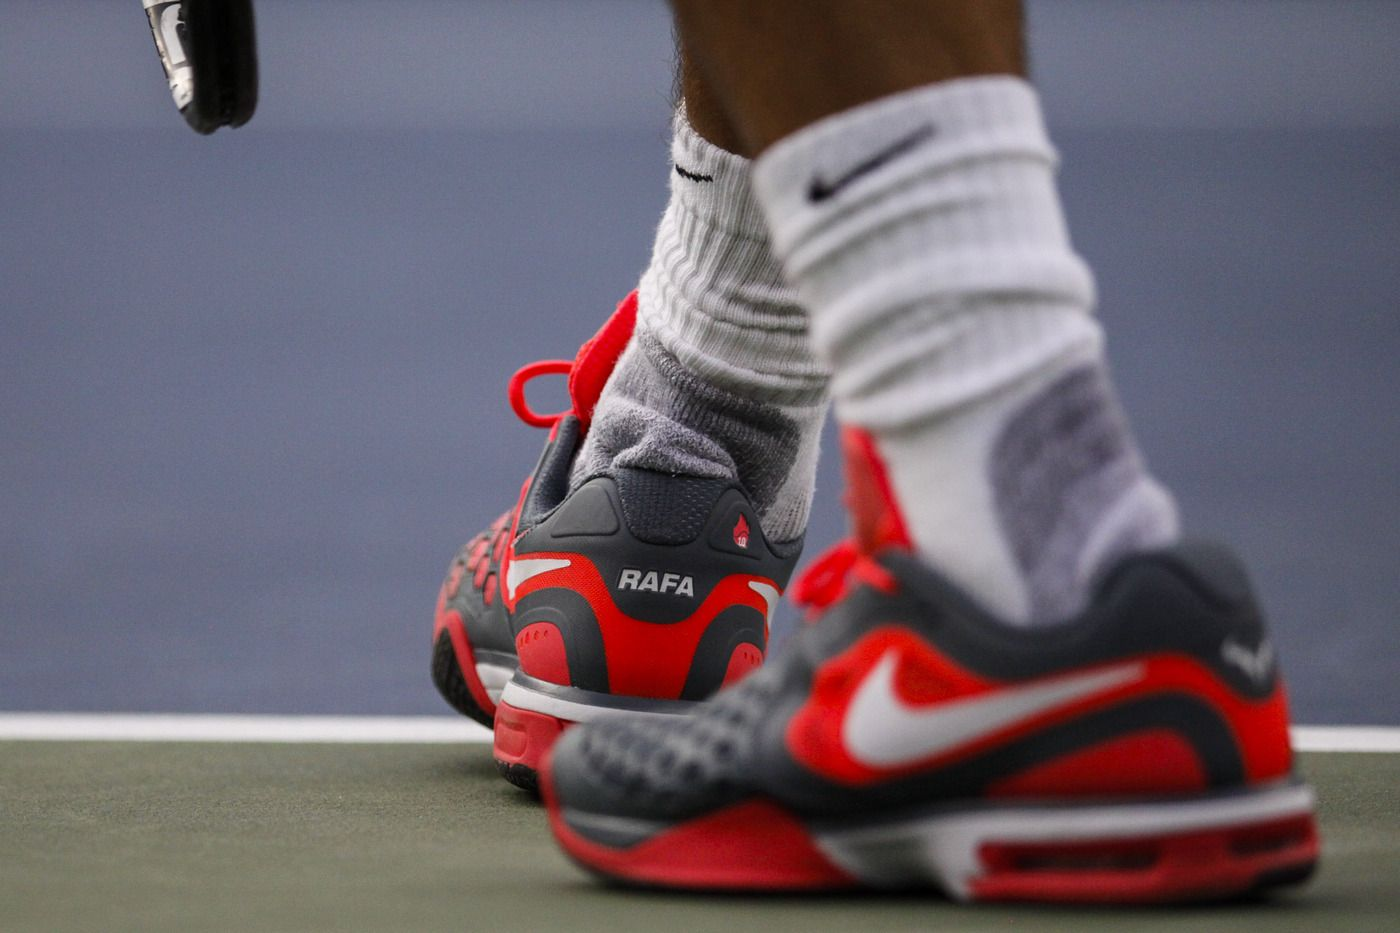 A Detail Of The Nike Sneakers Worn By Rafael Nadal While Playing Against Richard Gasquet In Their Semifinal Match On Day 13 Of The Sneakers Sneakers Nike Nike